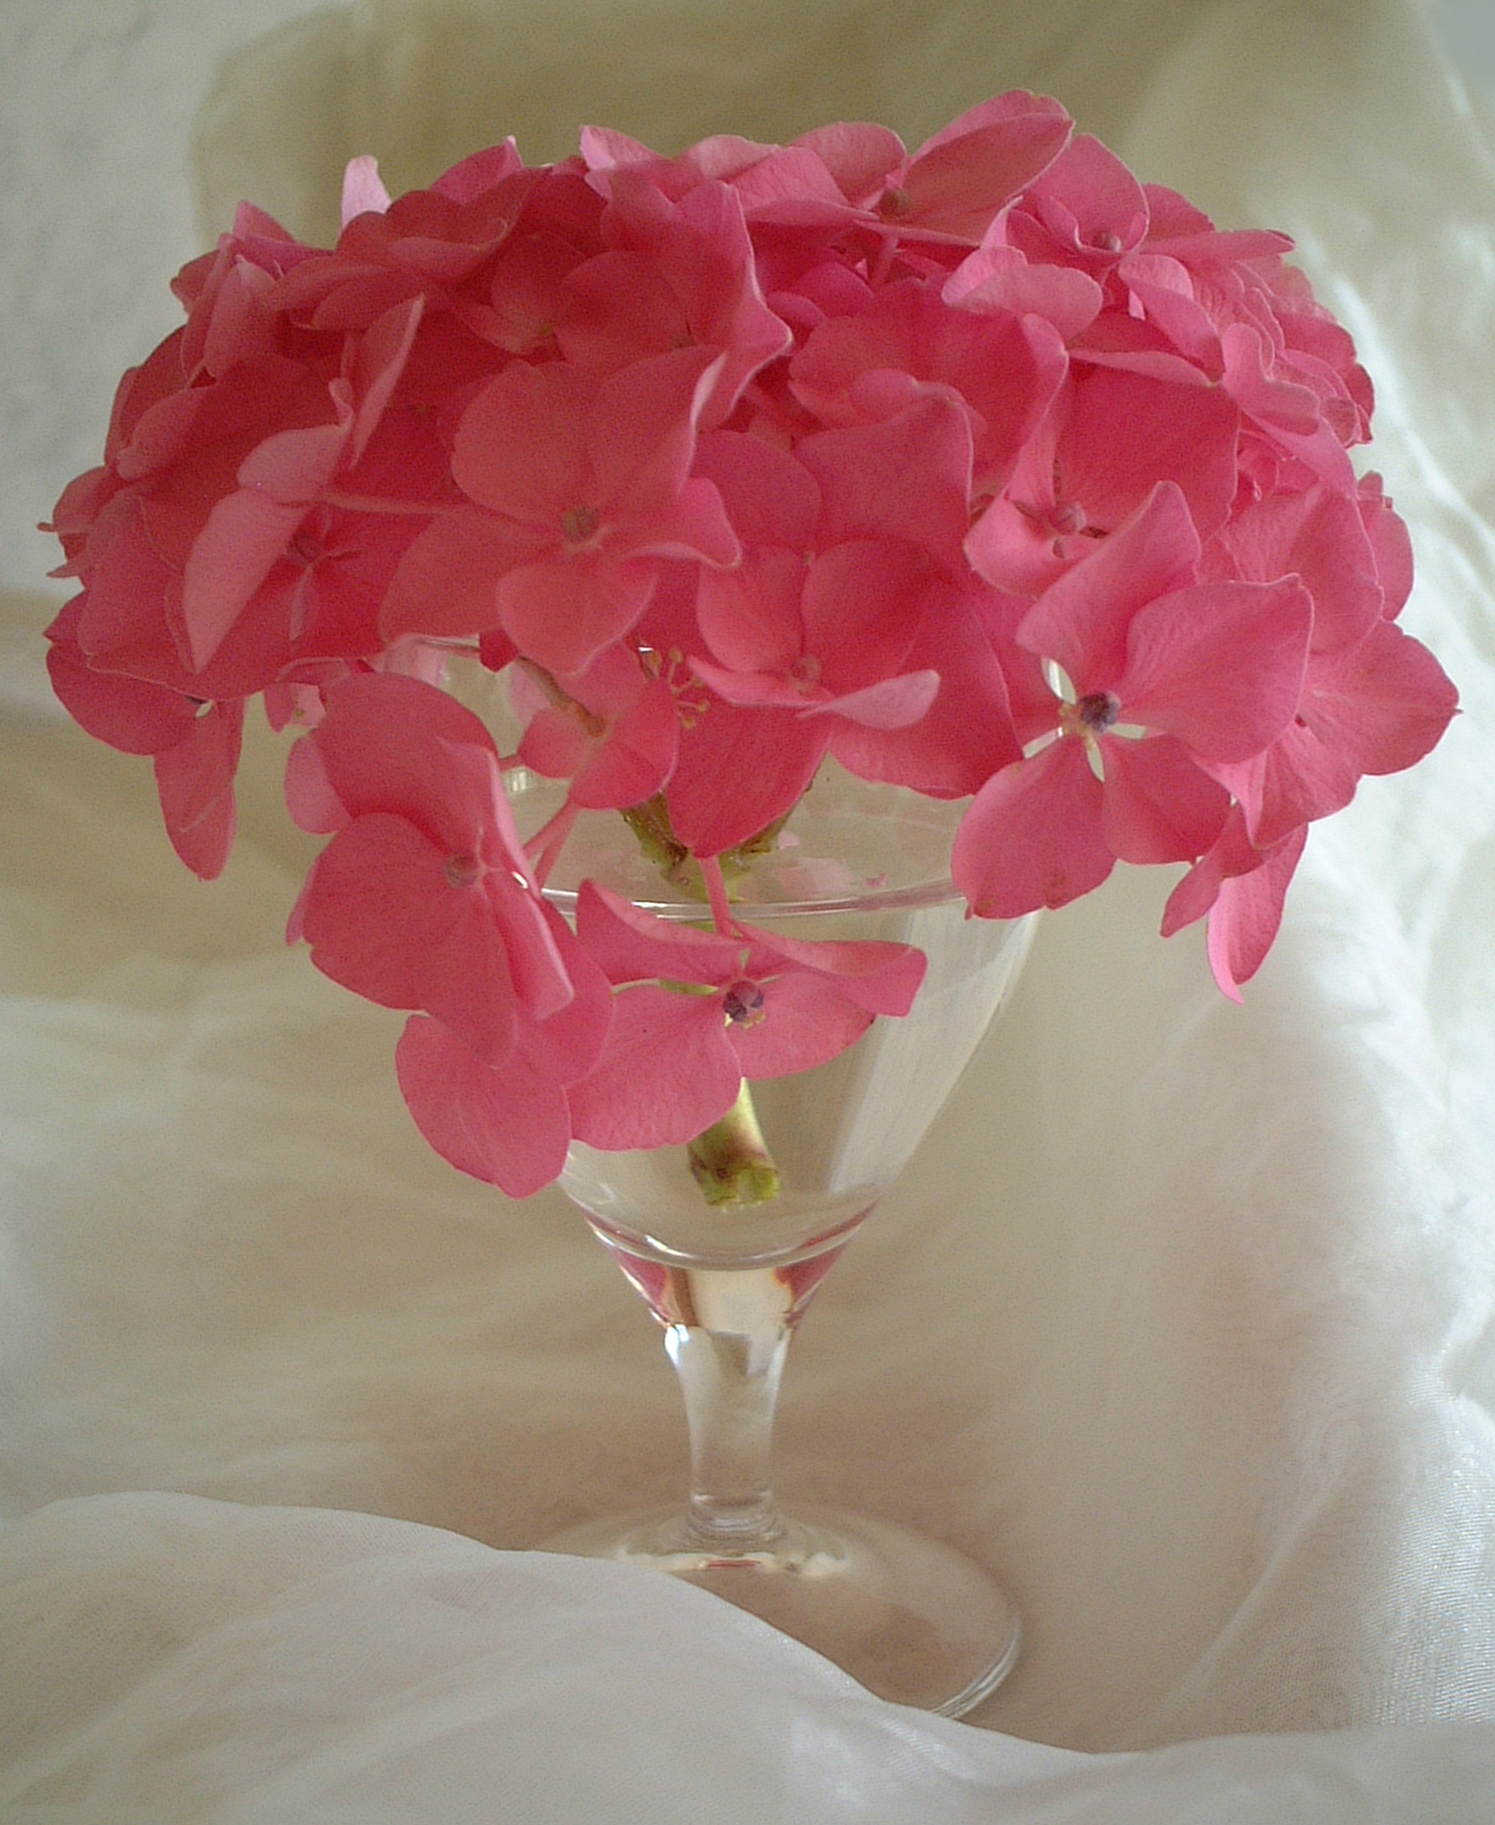 Creative design tips with hydrangeas